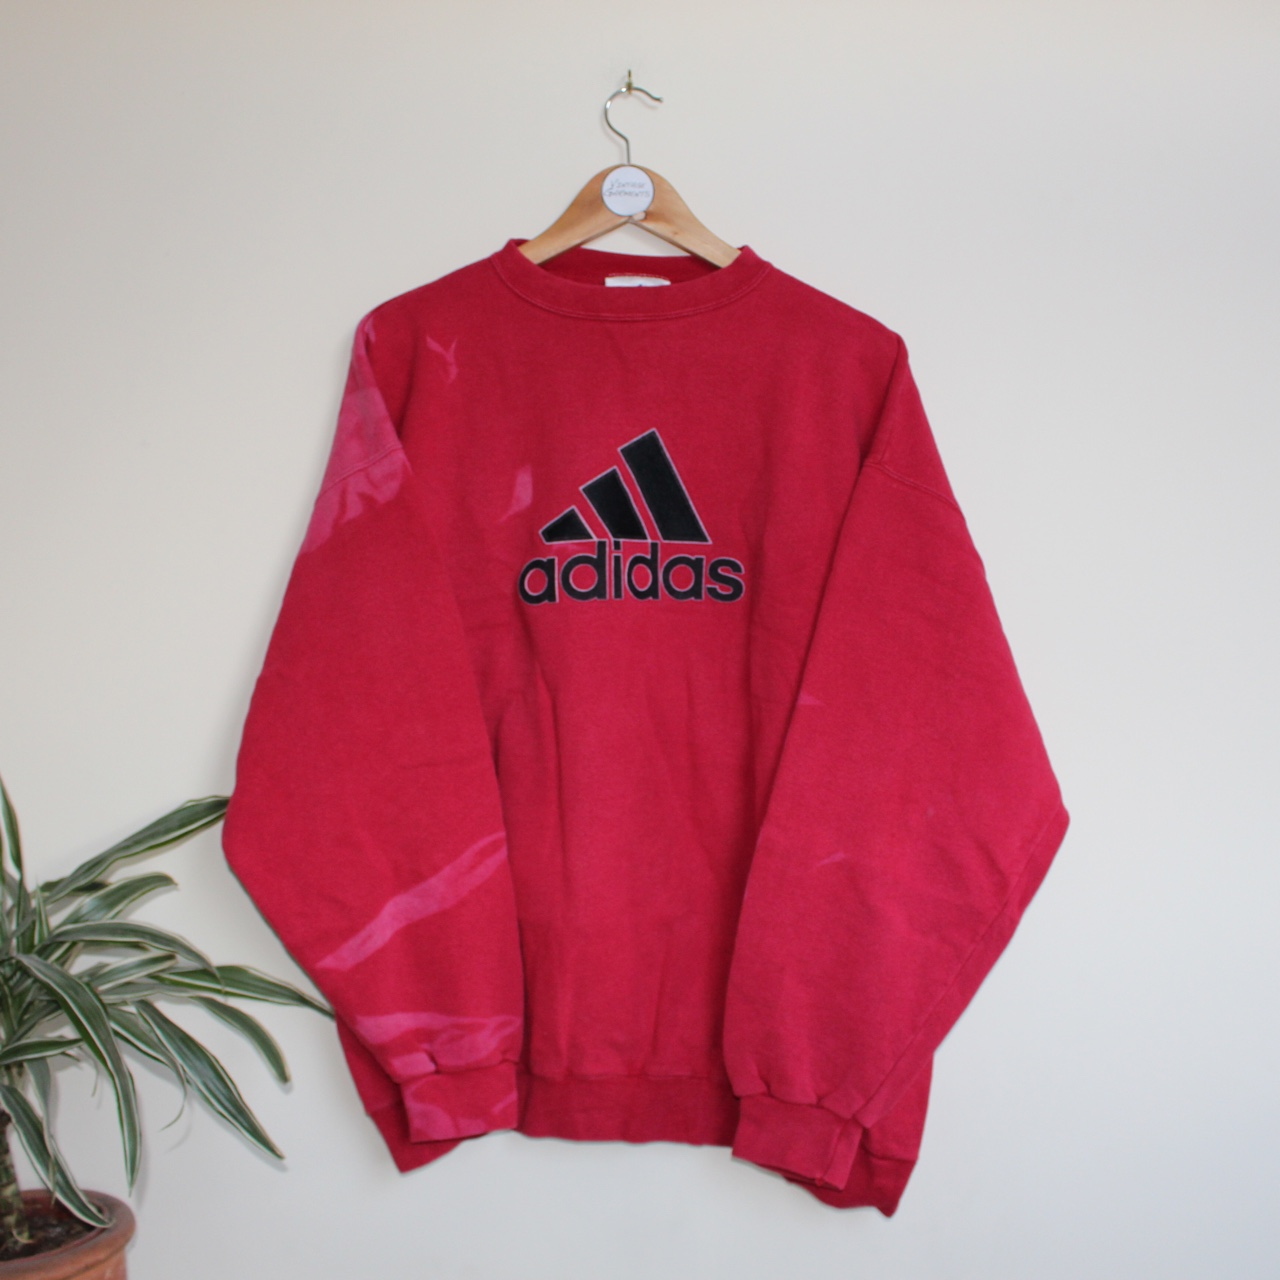 Faded To Sweater The Depop All Adding In Vintage Places Adidas Z7Pxgn66qw